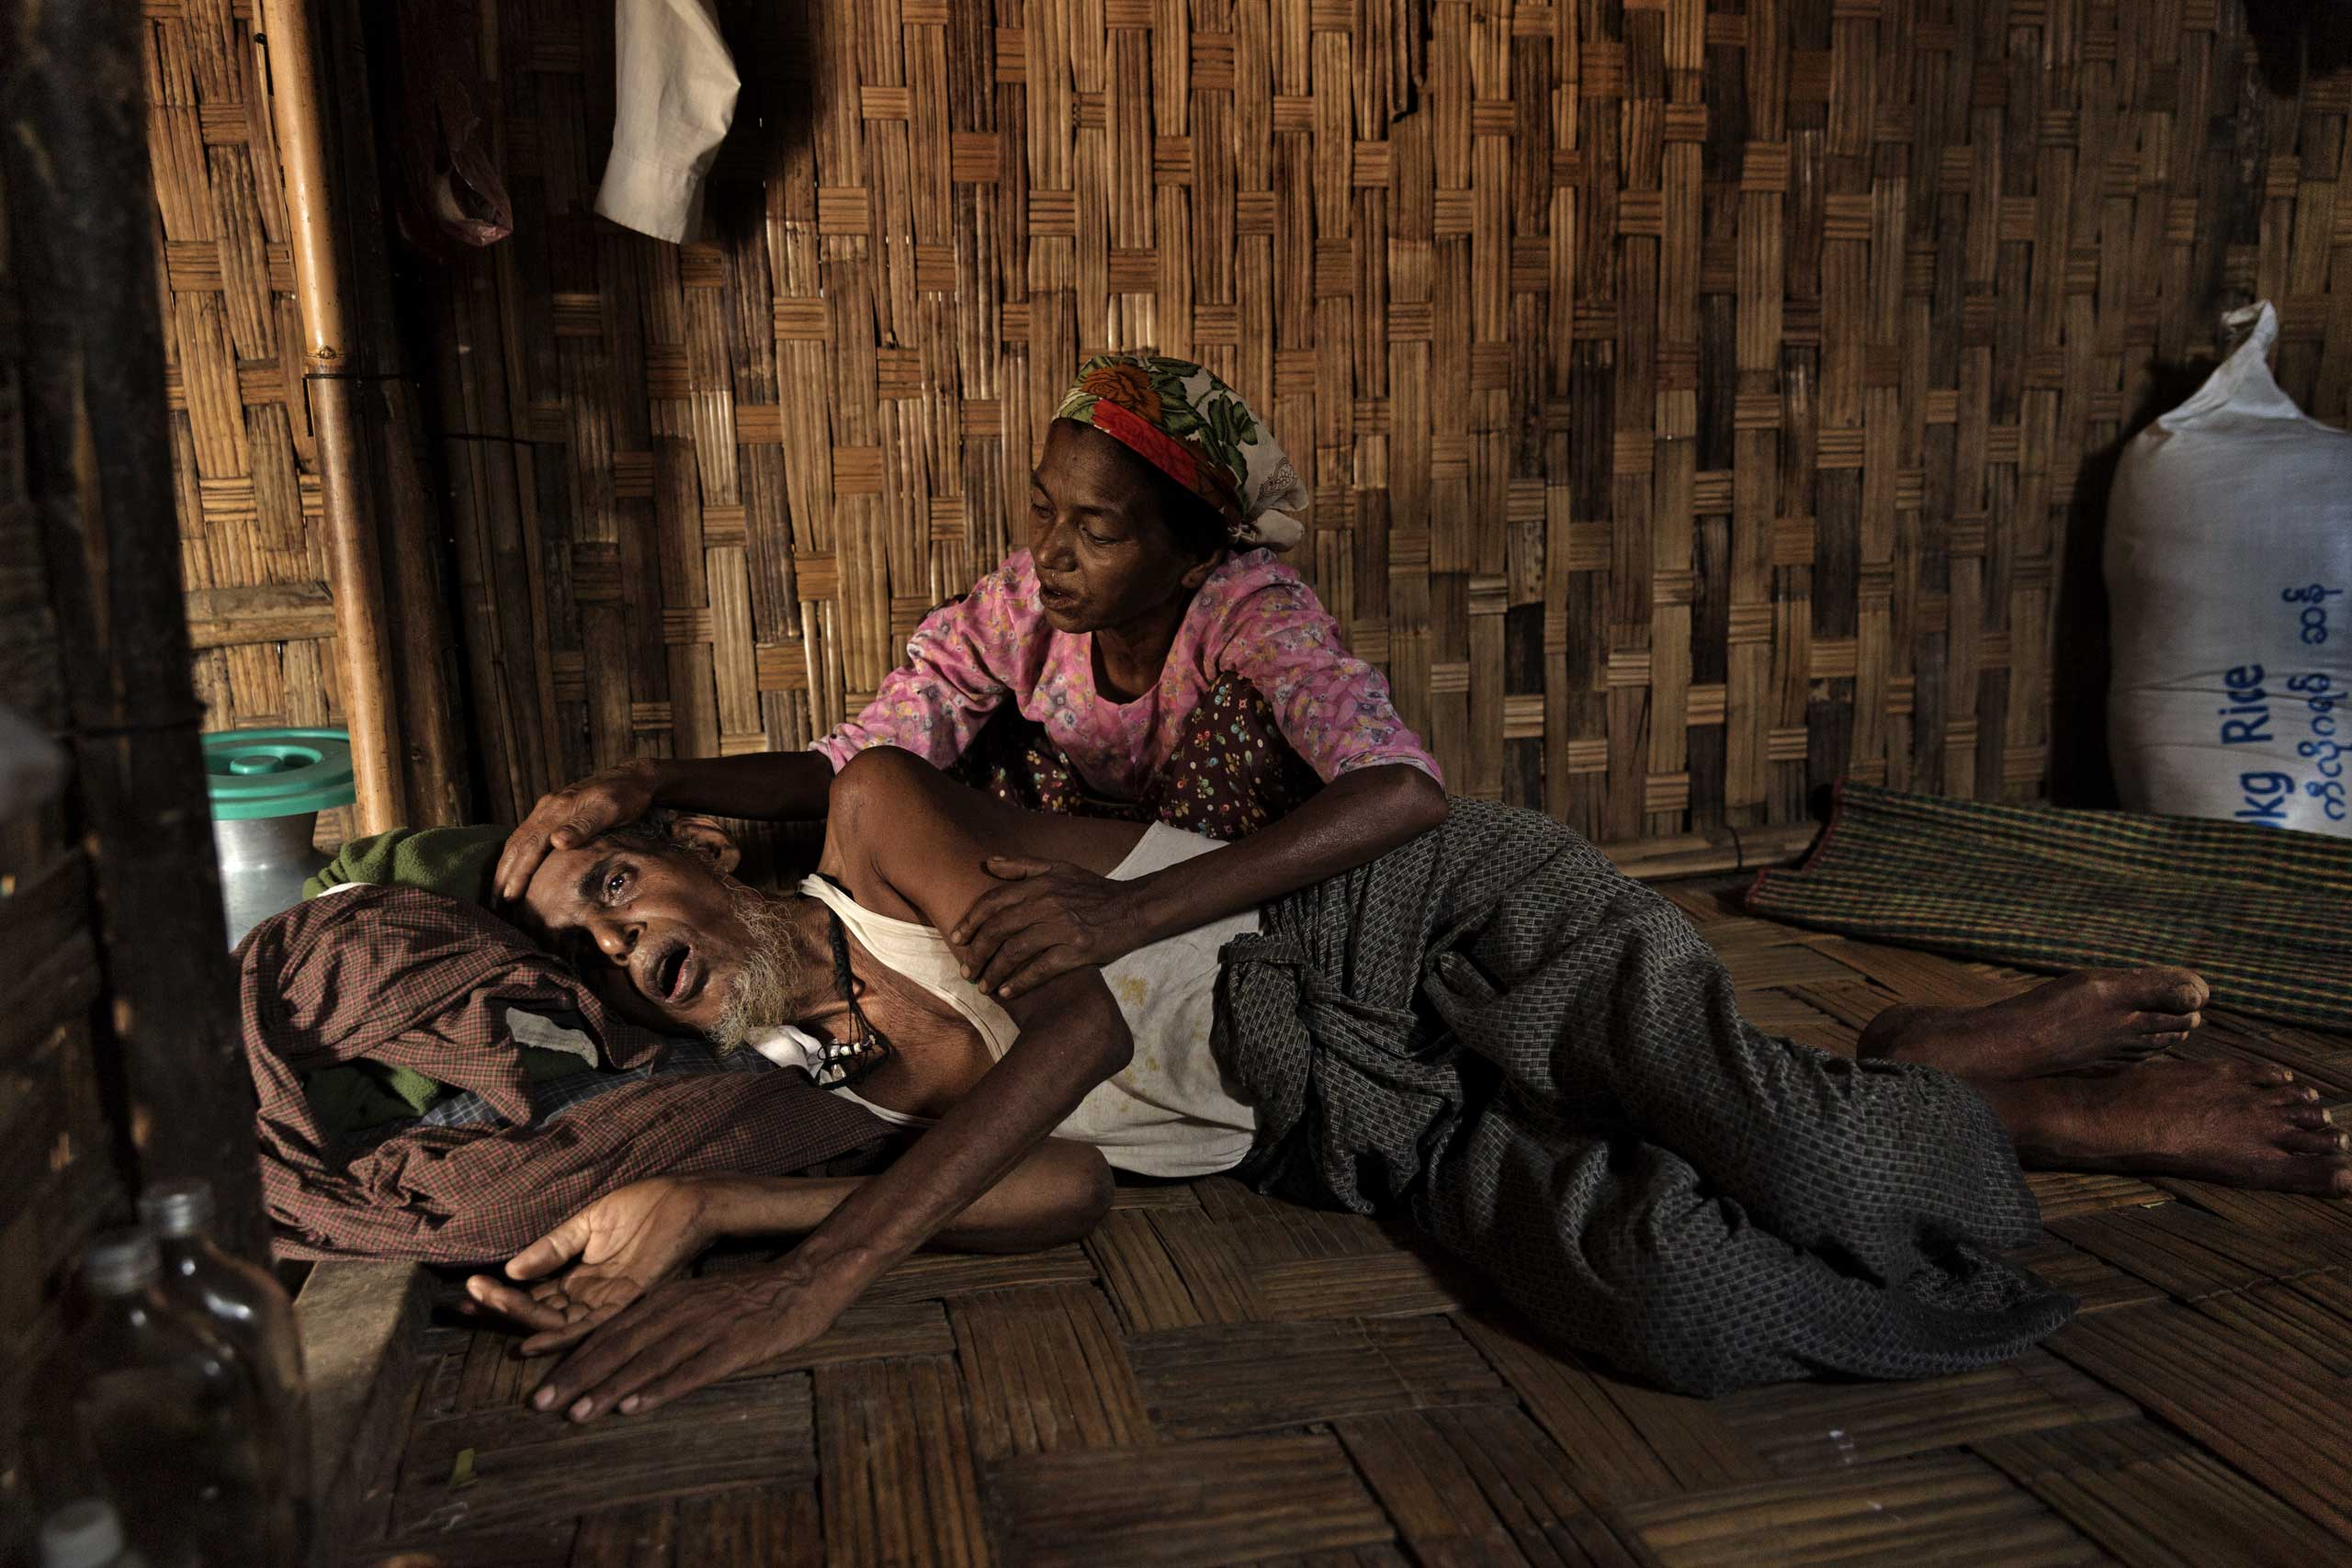 Abdul Kadir, 65, who has a severe stomach ailment and malnutrition, is cared for by his wife in one of the camps. More than 140,000 minority Rohingya Muslims have been forced to live in camps, where disease and despair have taken root.From  The Rohingya, Burma's Forgotten Muslims by James Nachtwey